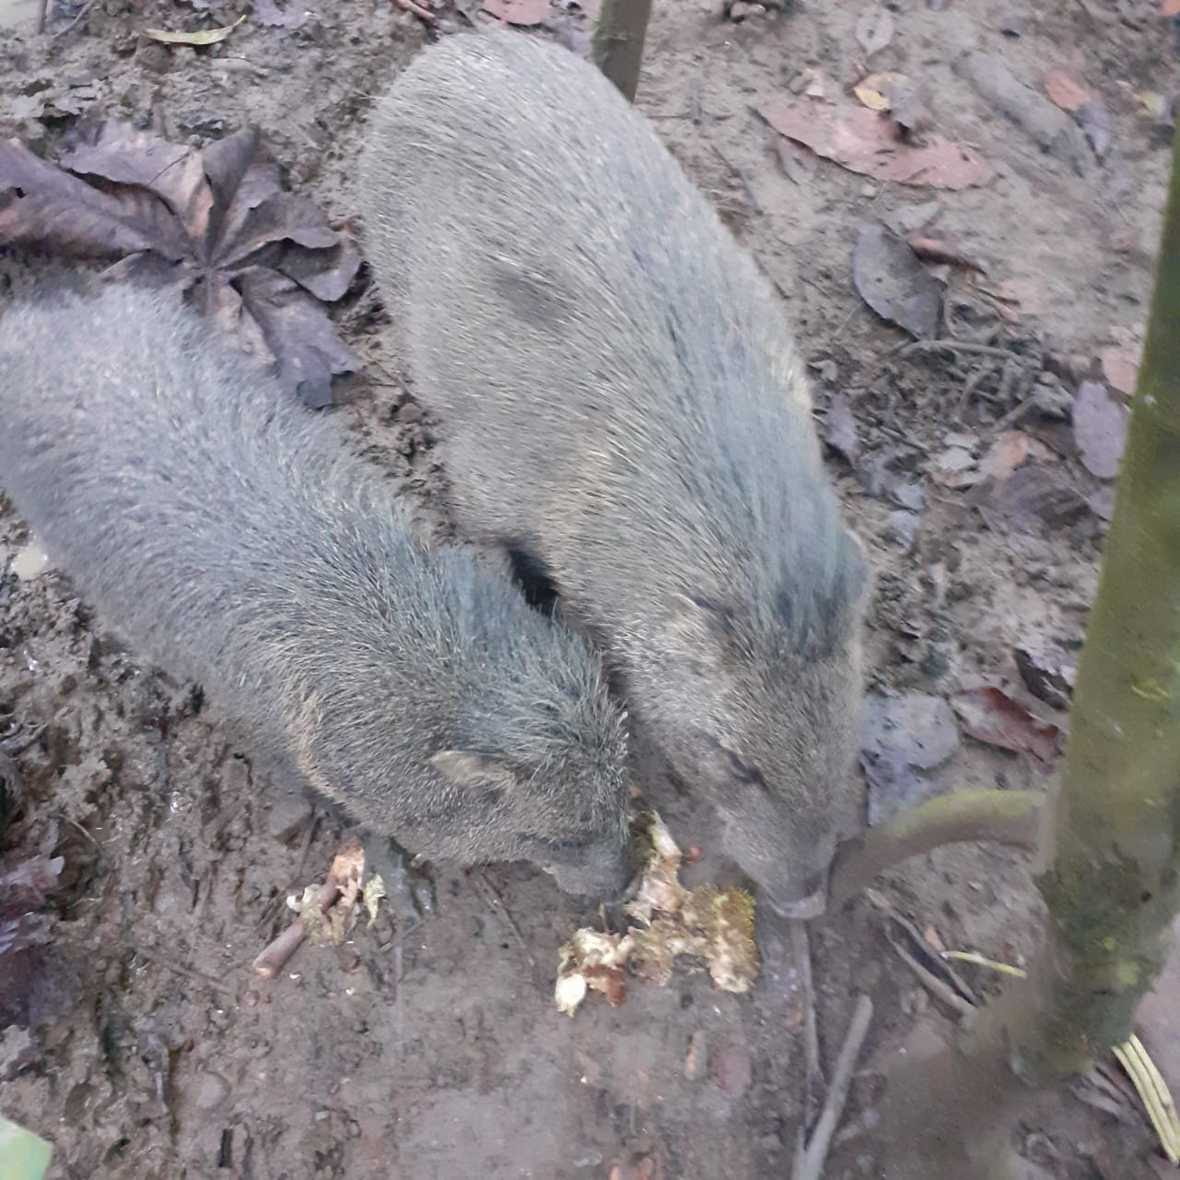 Two peccaries eating a castana fruit on the ground